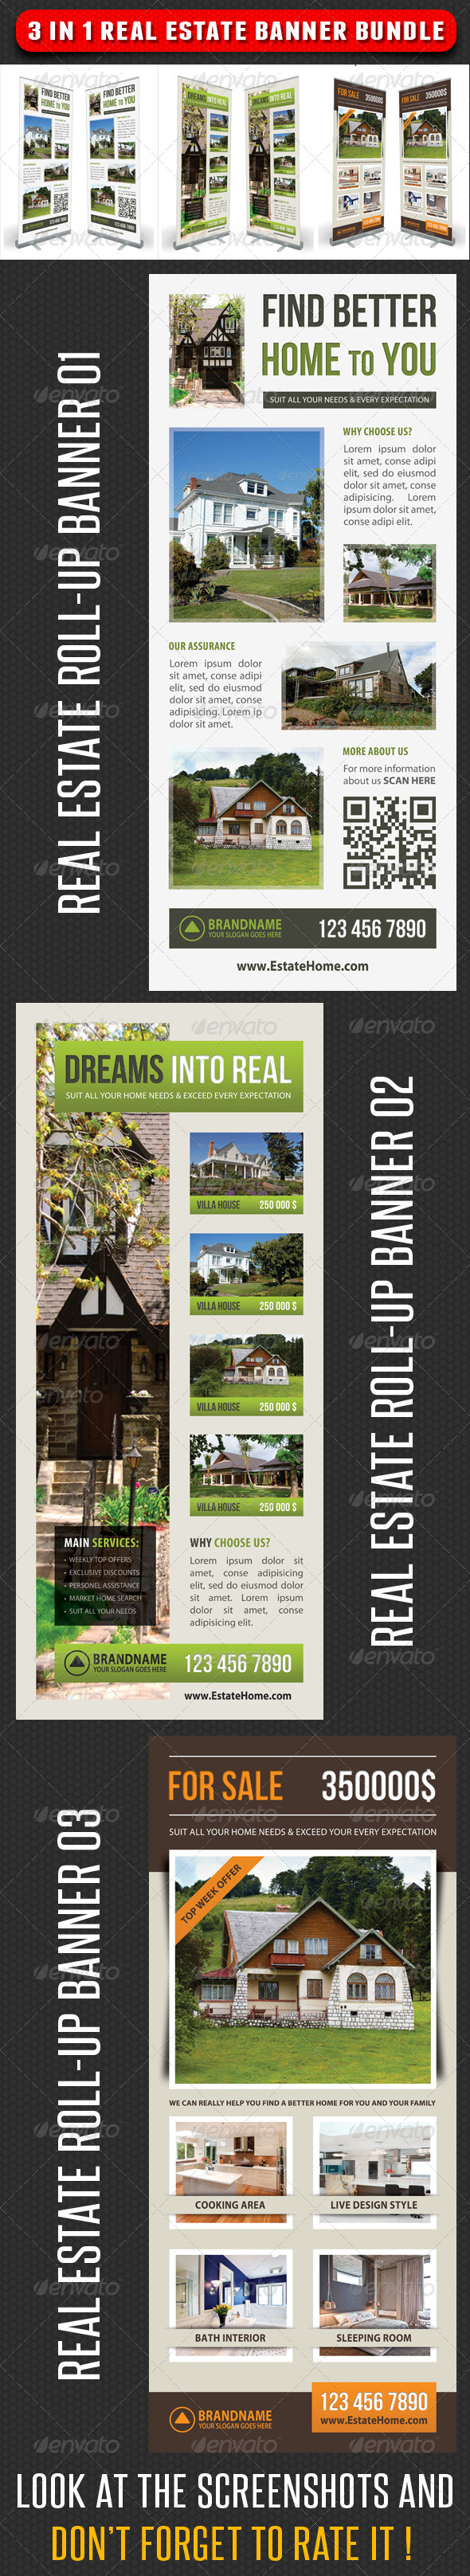 3 in 1 Real Estate Banner Bundle 04 - Signage Print Templates